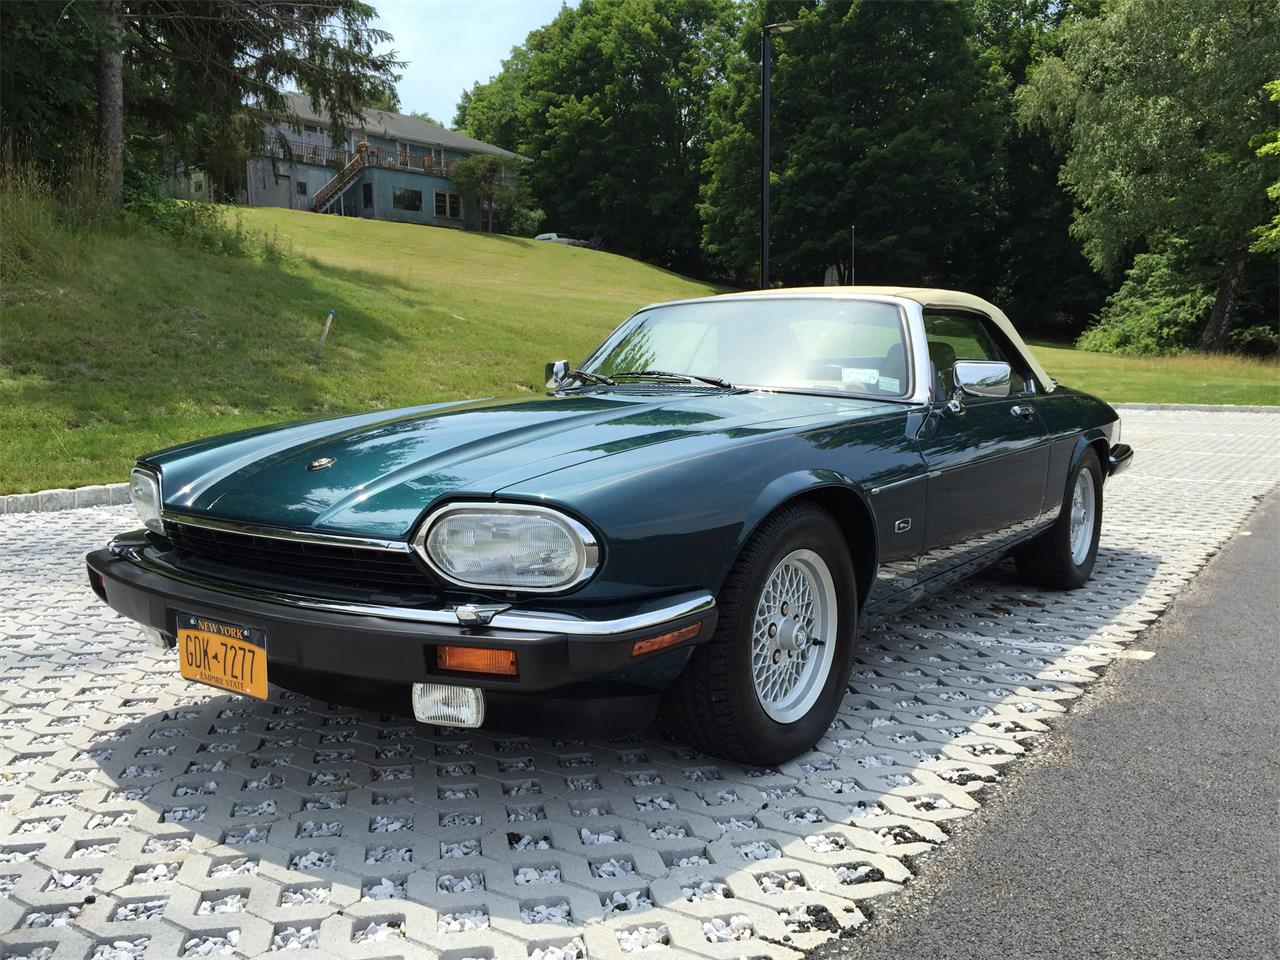 Large Picture of 1992 Jaguar XJS located in New York - $12,000.00 Offered by a Private Seller - EVKT